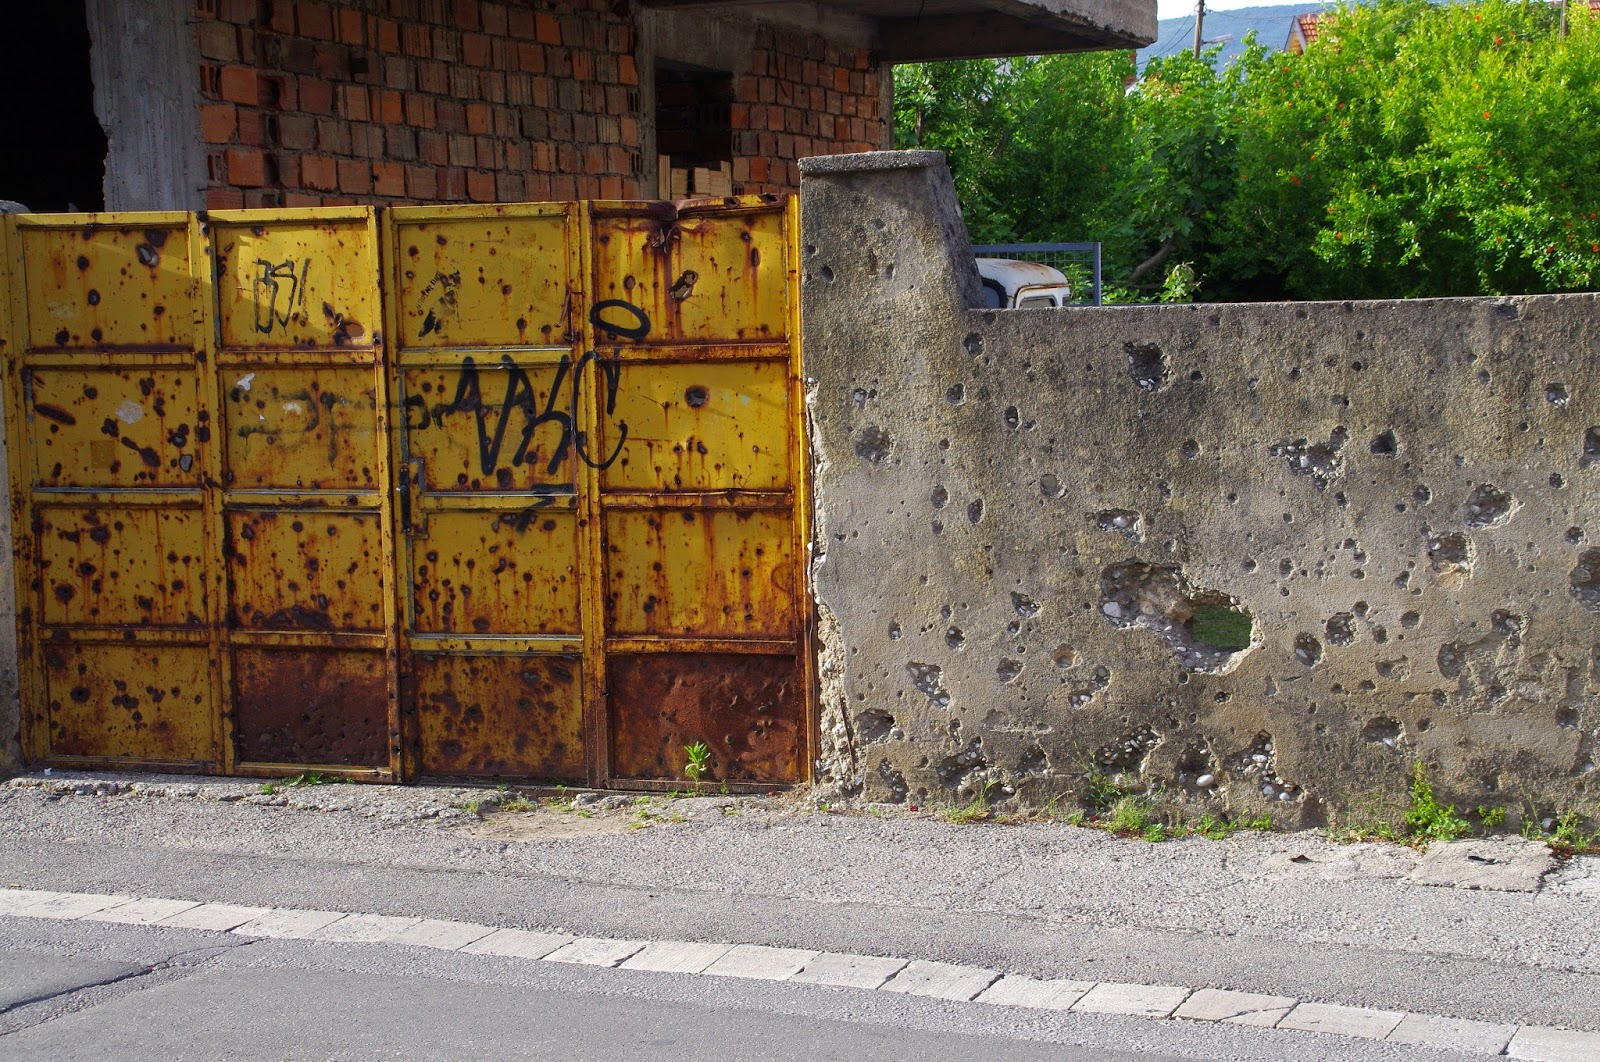 Bullet damaged walls in Mostar